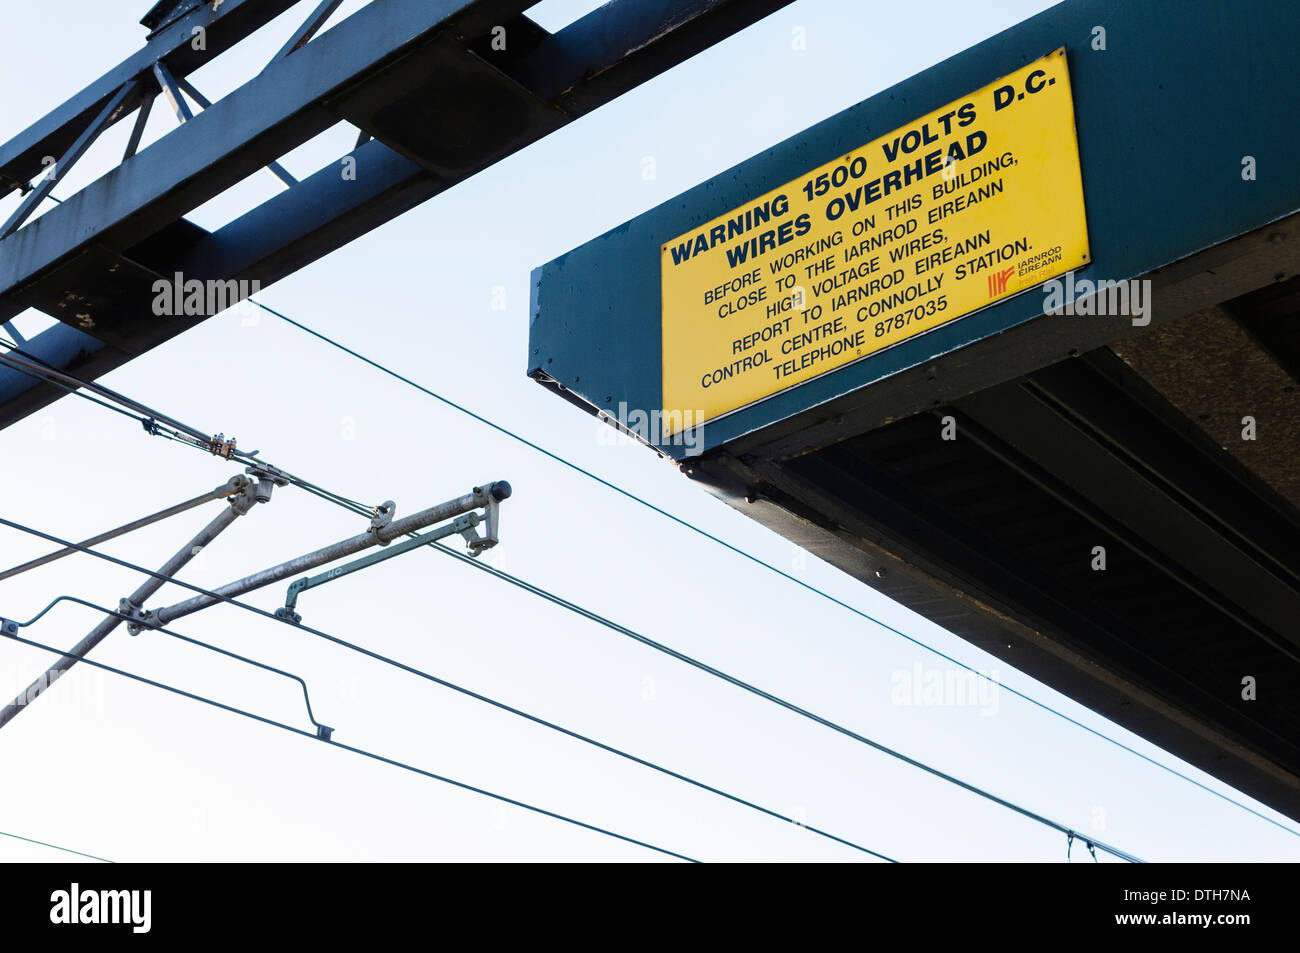 Sign warning that overhead power lines carry 1500 volts DC. - Stock Image